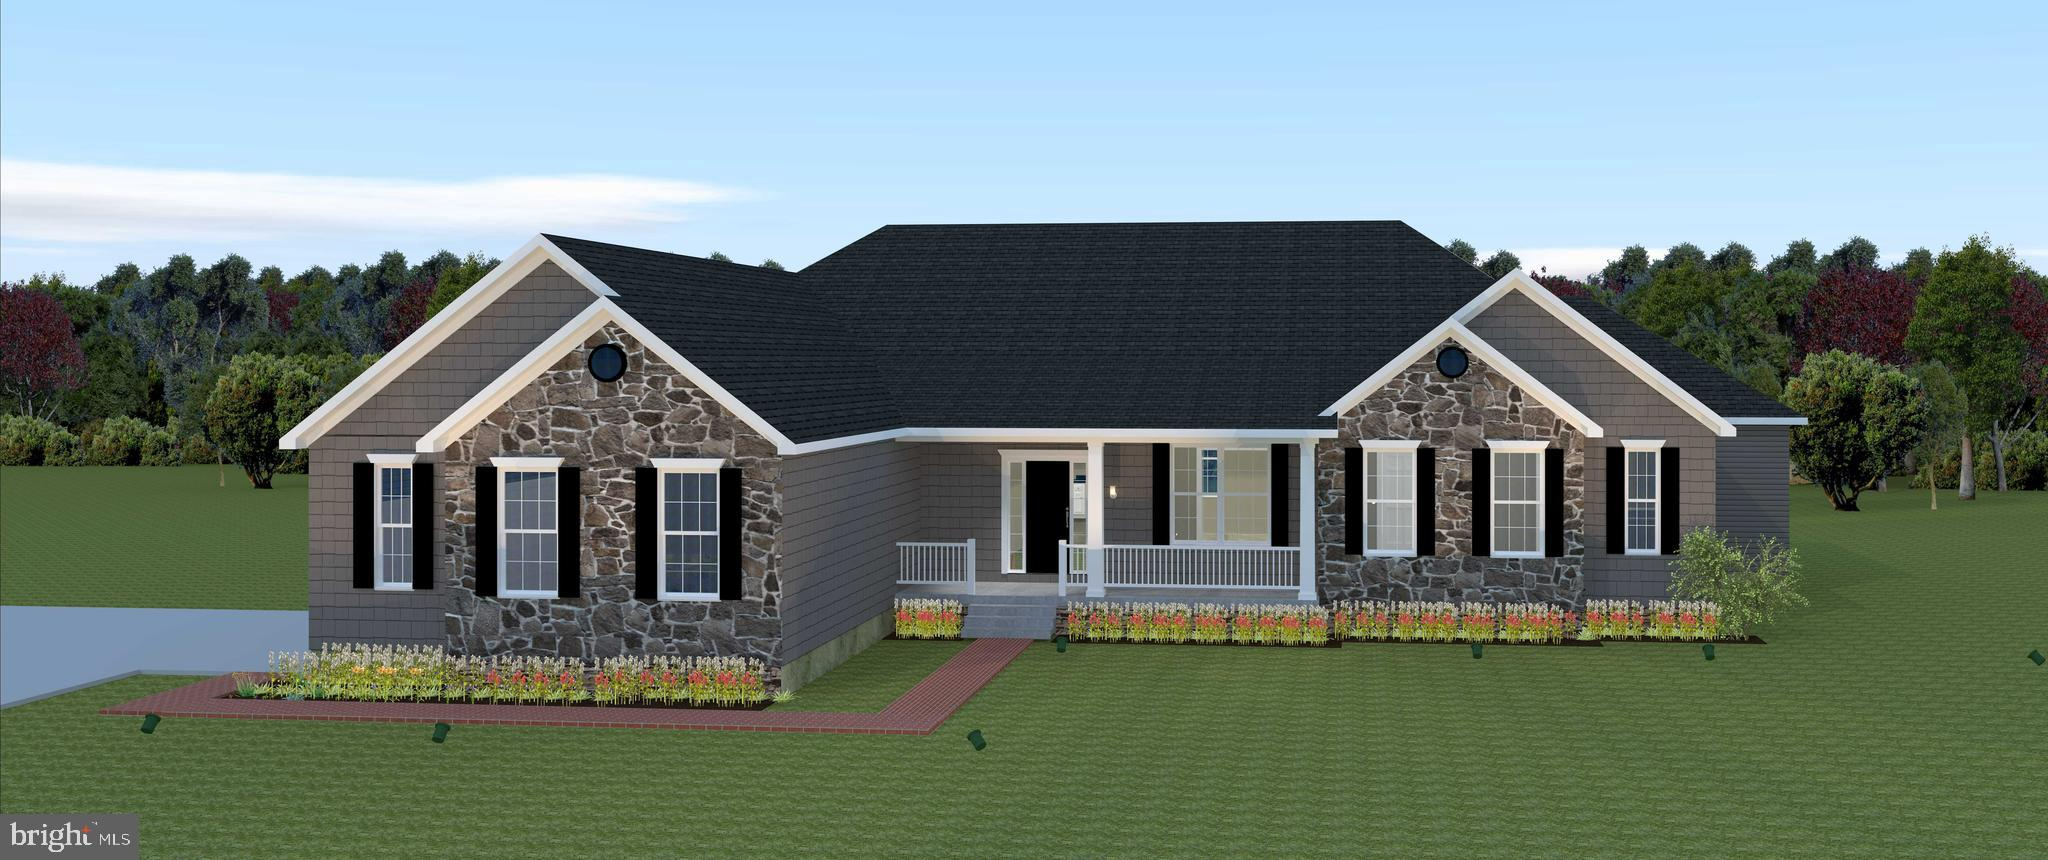 To Be Built home. Gorgeous Single Story Home with 4 bedrooms,  3 baths  AND 2  Primary Suites  on 0.51+/- Acres.   Spacious open floor plan and has plenty of room!  There is still plenty of time to pick selections for this home.   It will be completed by August 2021.  It is  located is close to downtown Dover DE with everything from shopping  to entertainment!